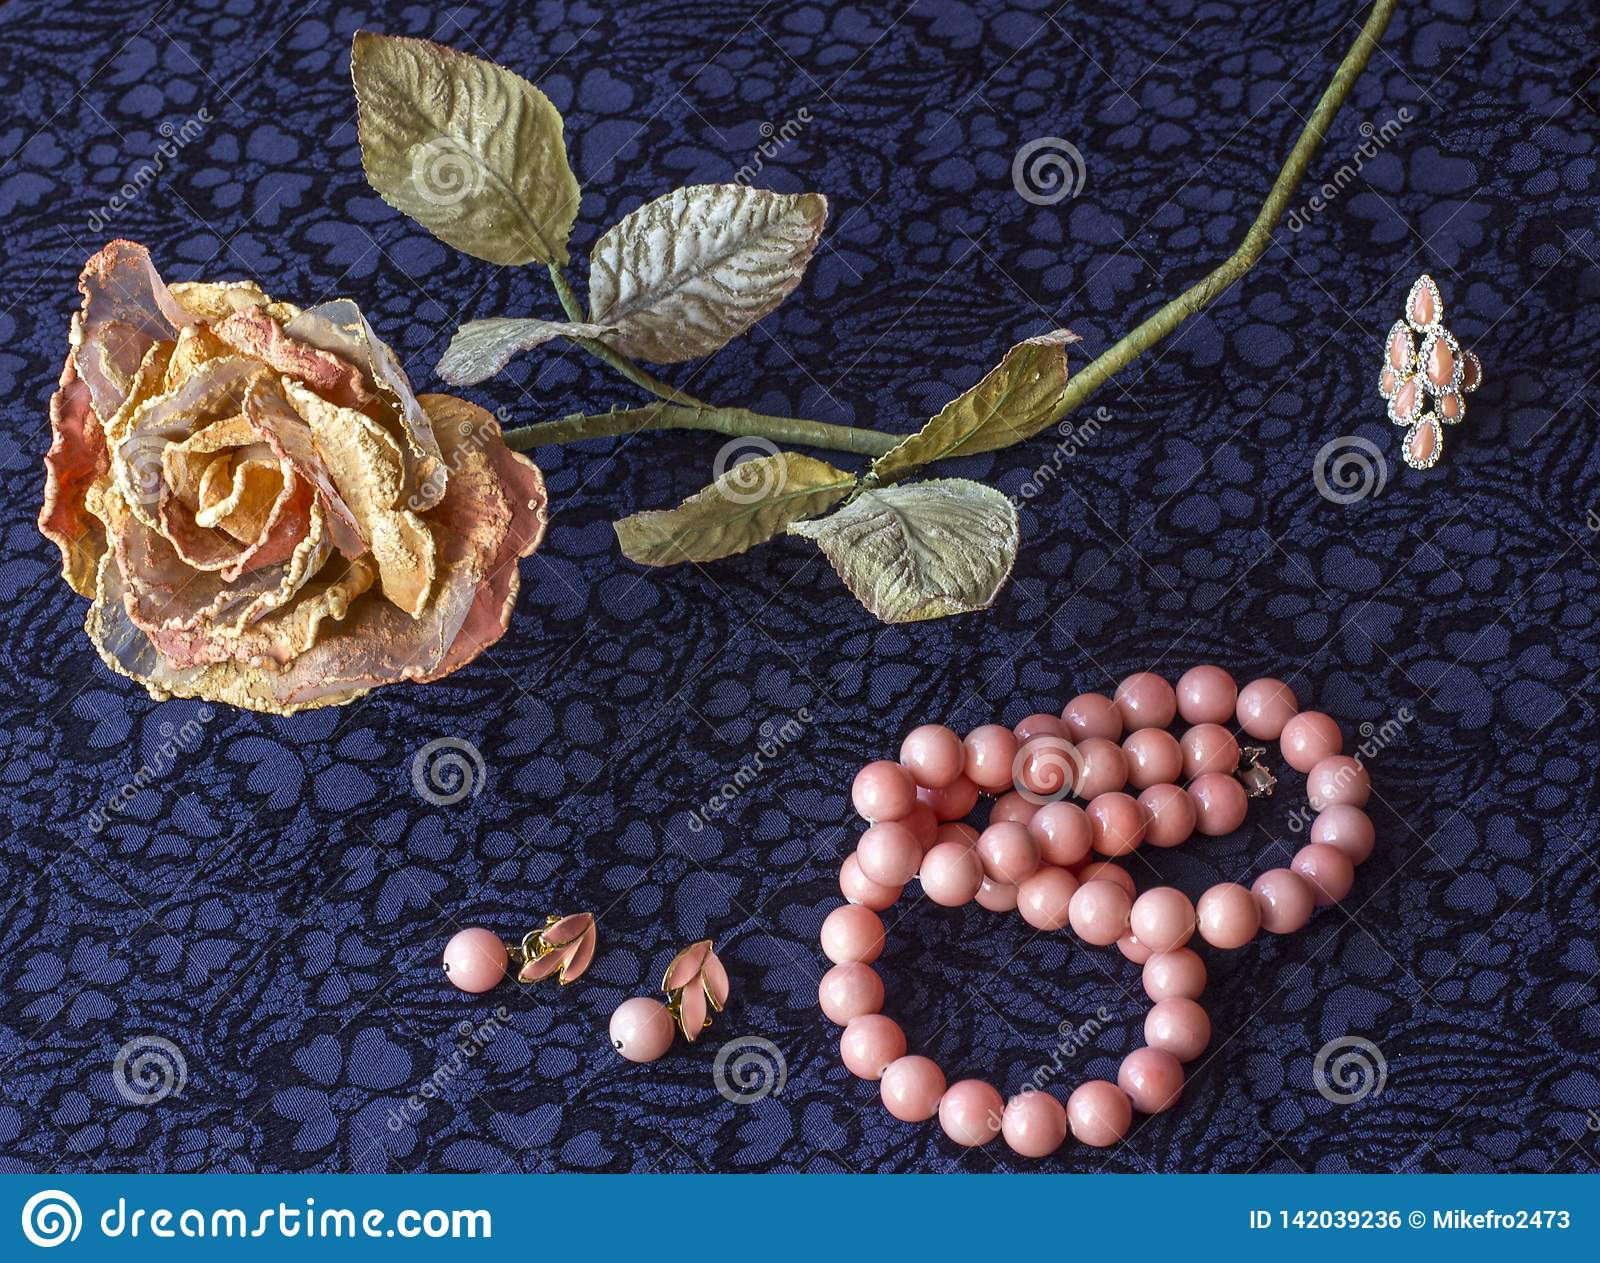 Still life of artificial rose with rose beads, earrings, brooch on textile background